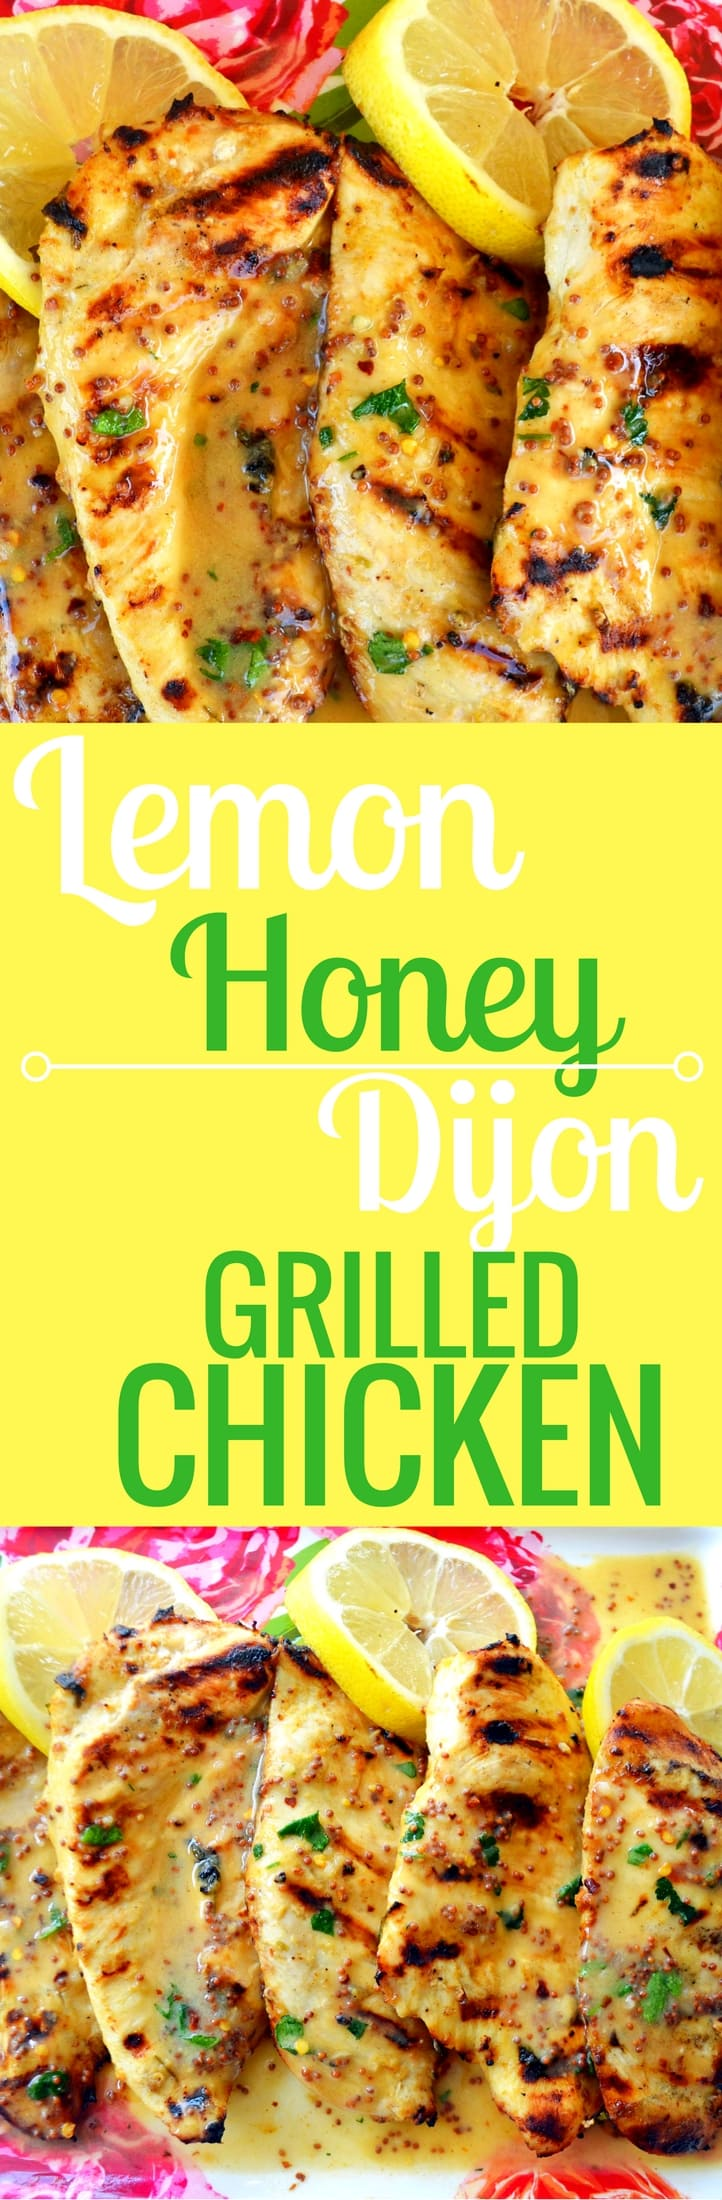 Lemon Honey Dijon Grilled Chicken